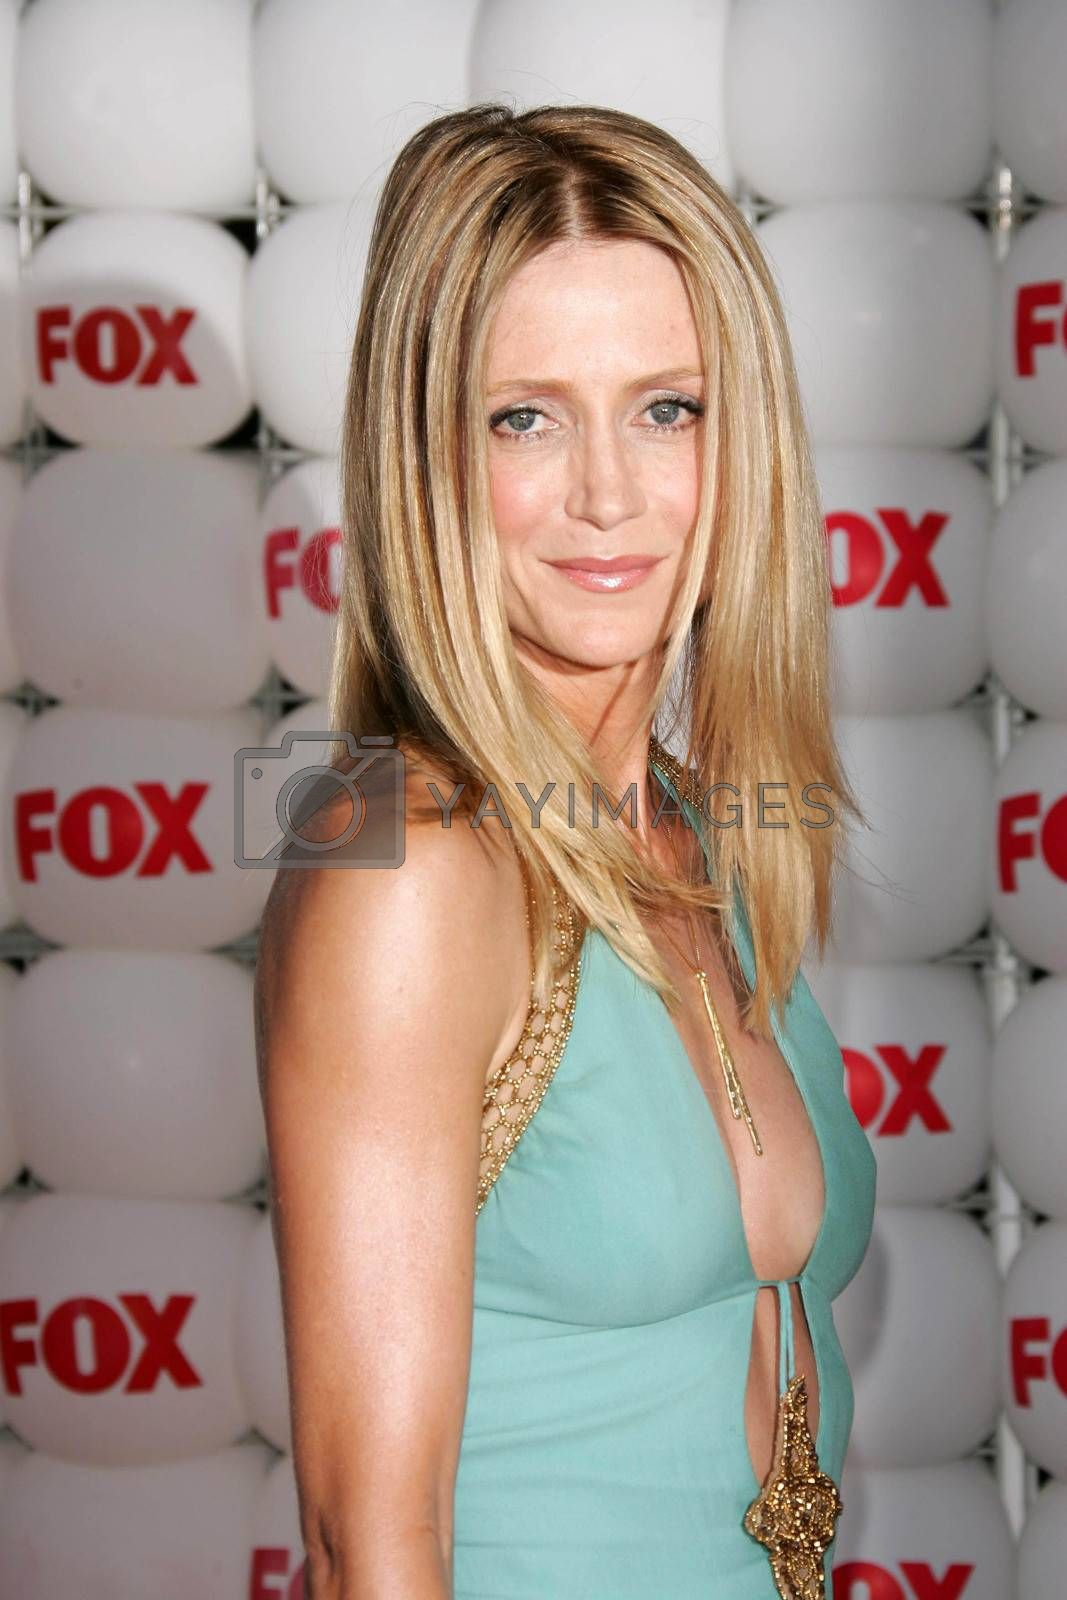 FOX Summer TCA Party by ImageCollect